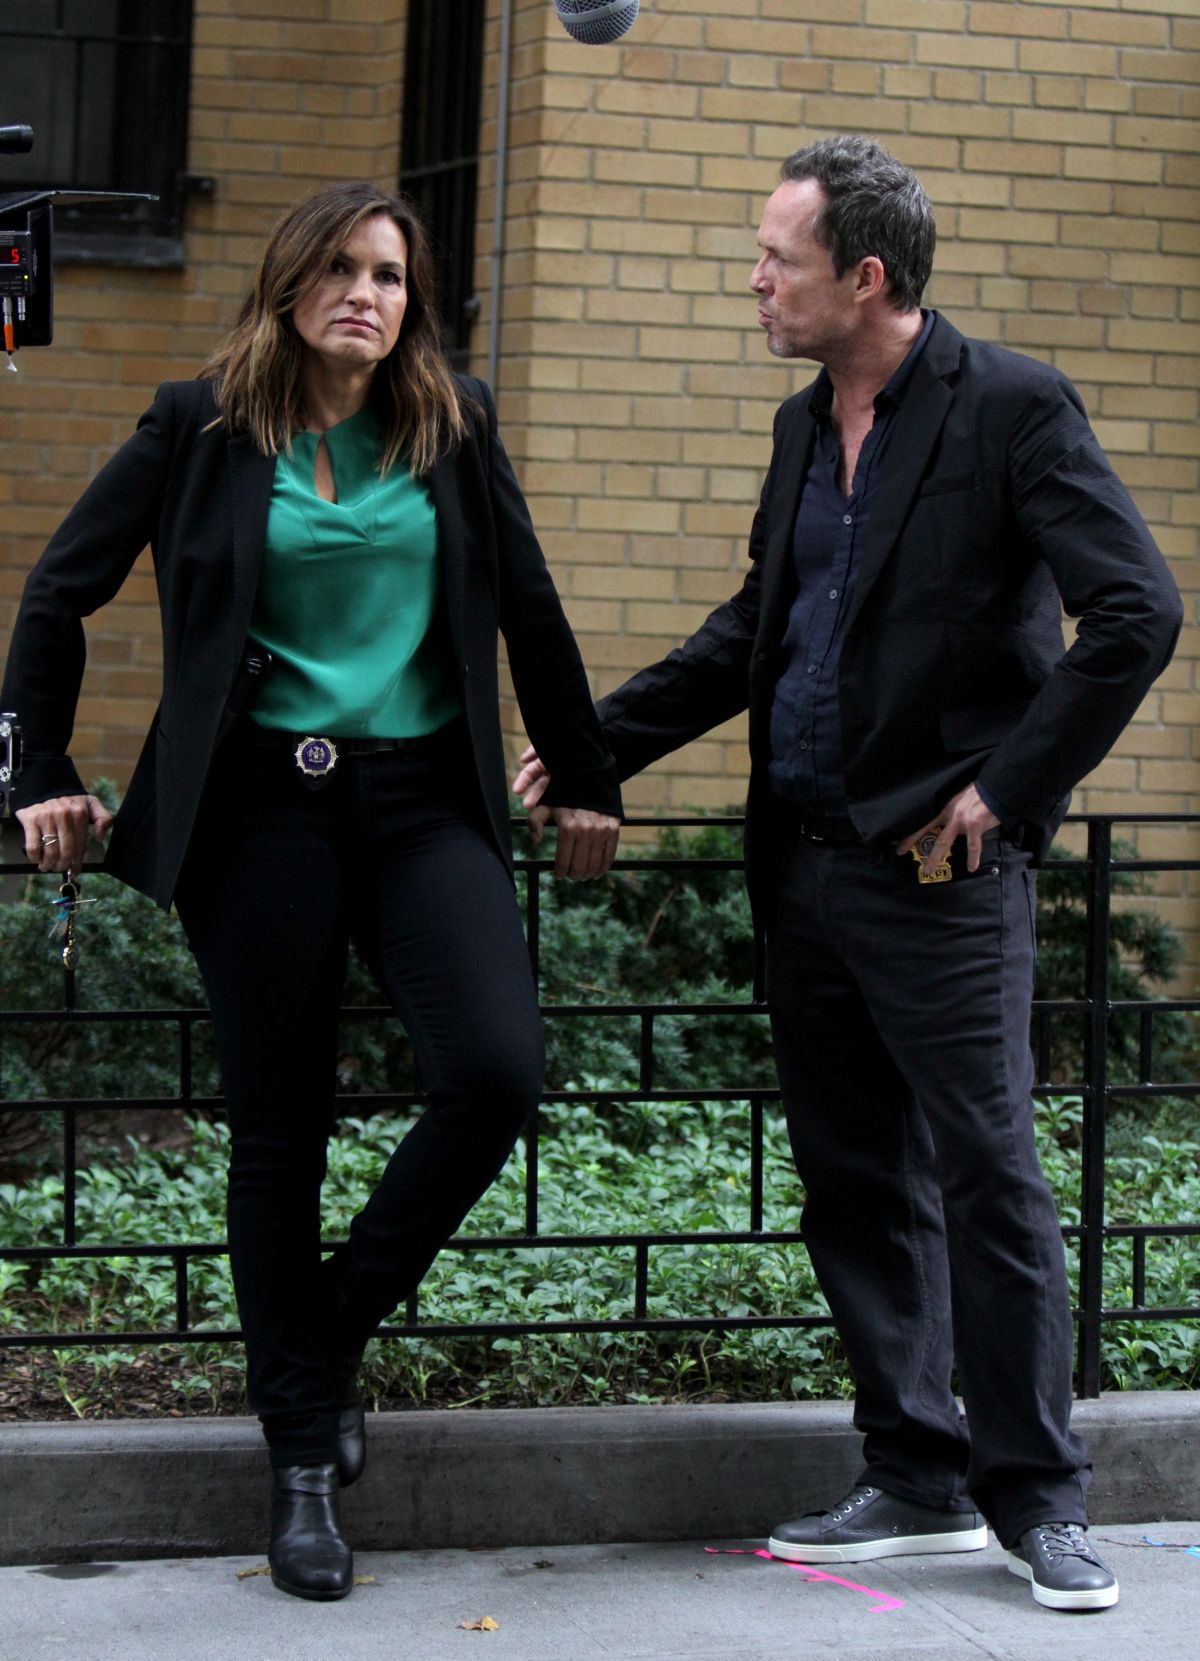 Mariska Hargitay On The Set Of Law And Order Svu In New